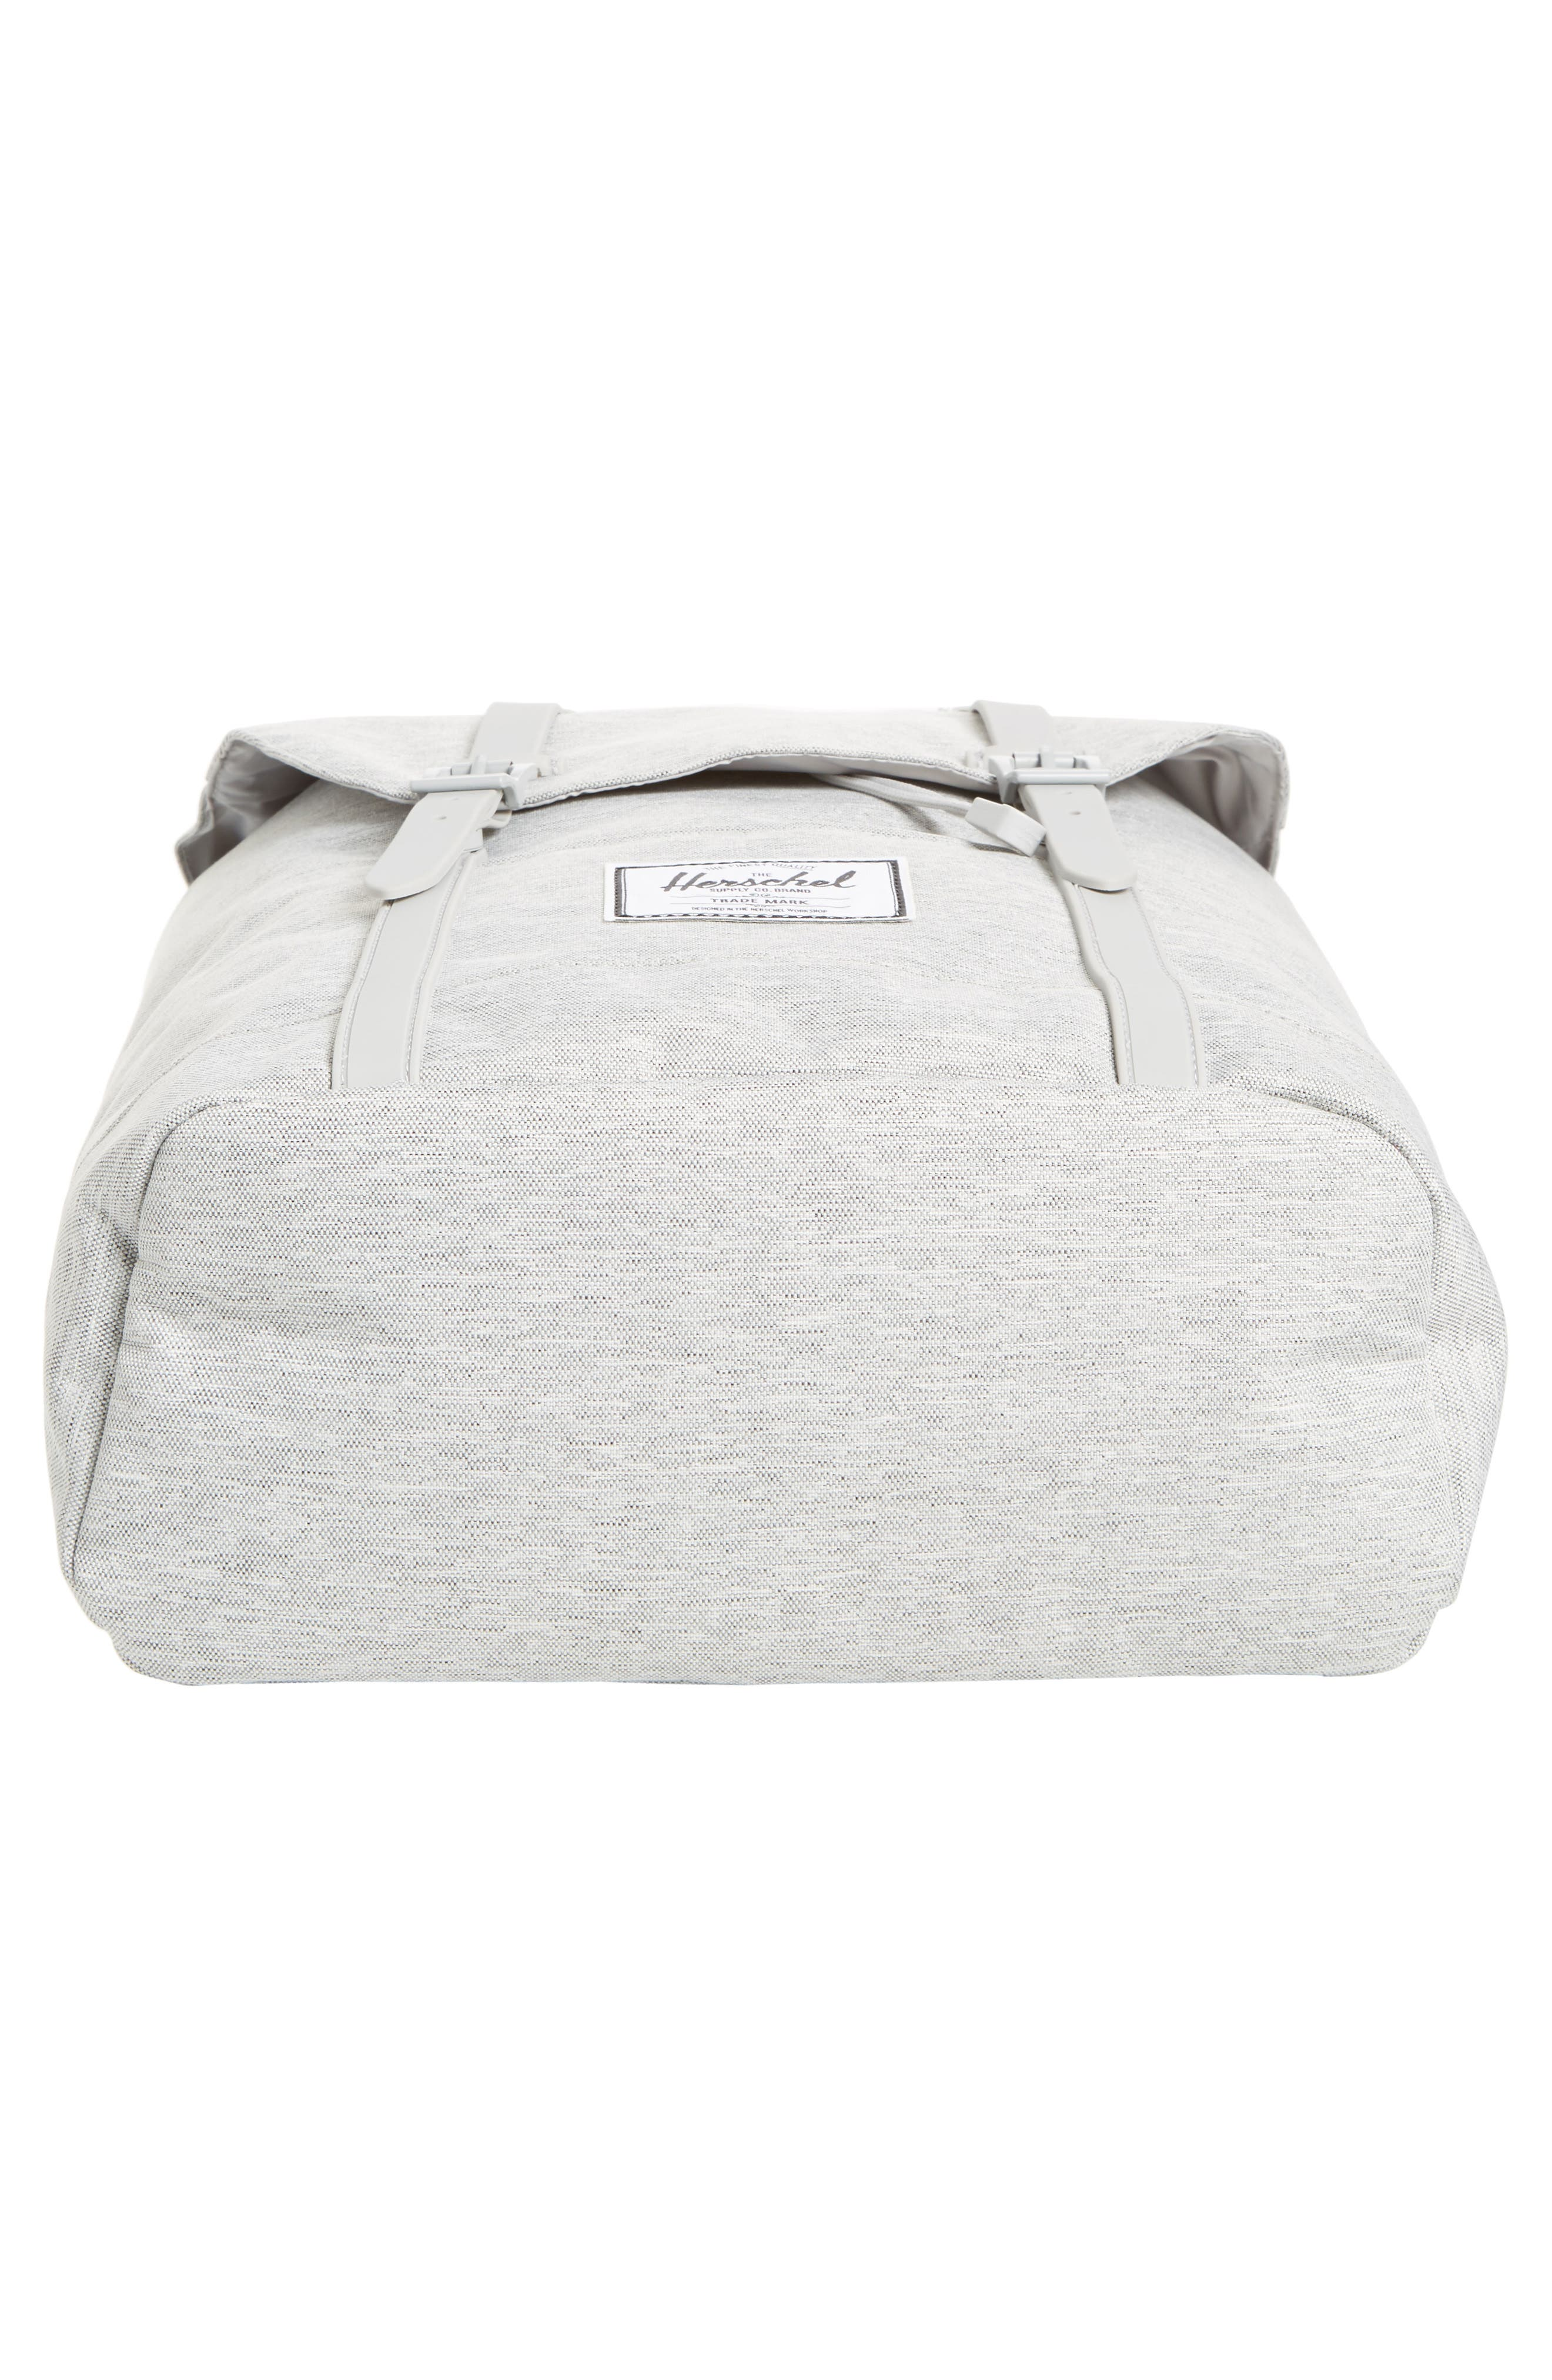 HERSCHEL SUPPLY CO., Retreat Backpack, Alternate thumbnail 7, color, LIGHT GREY CROSSHATCH/ GREY